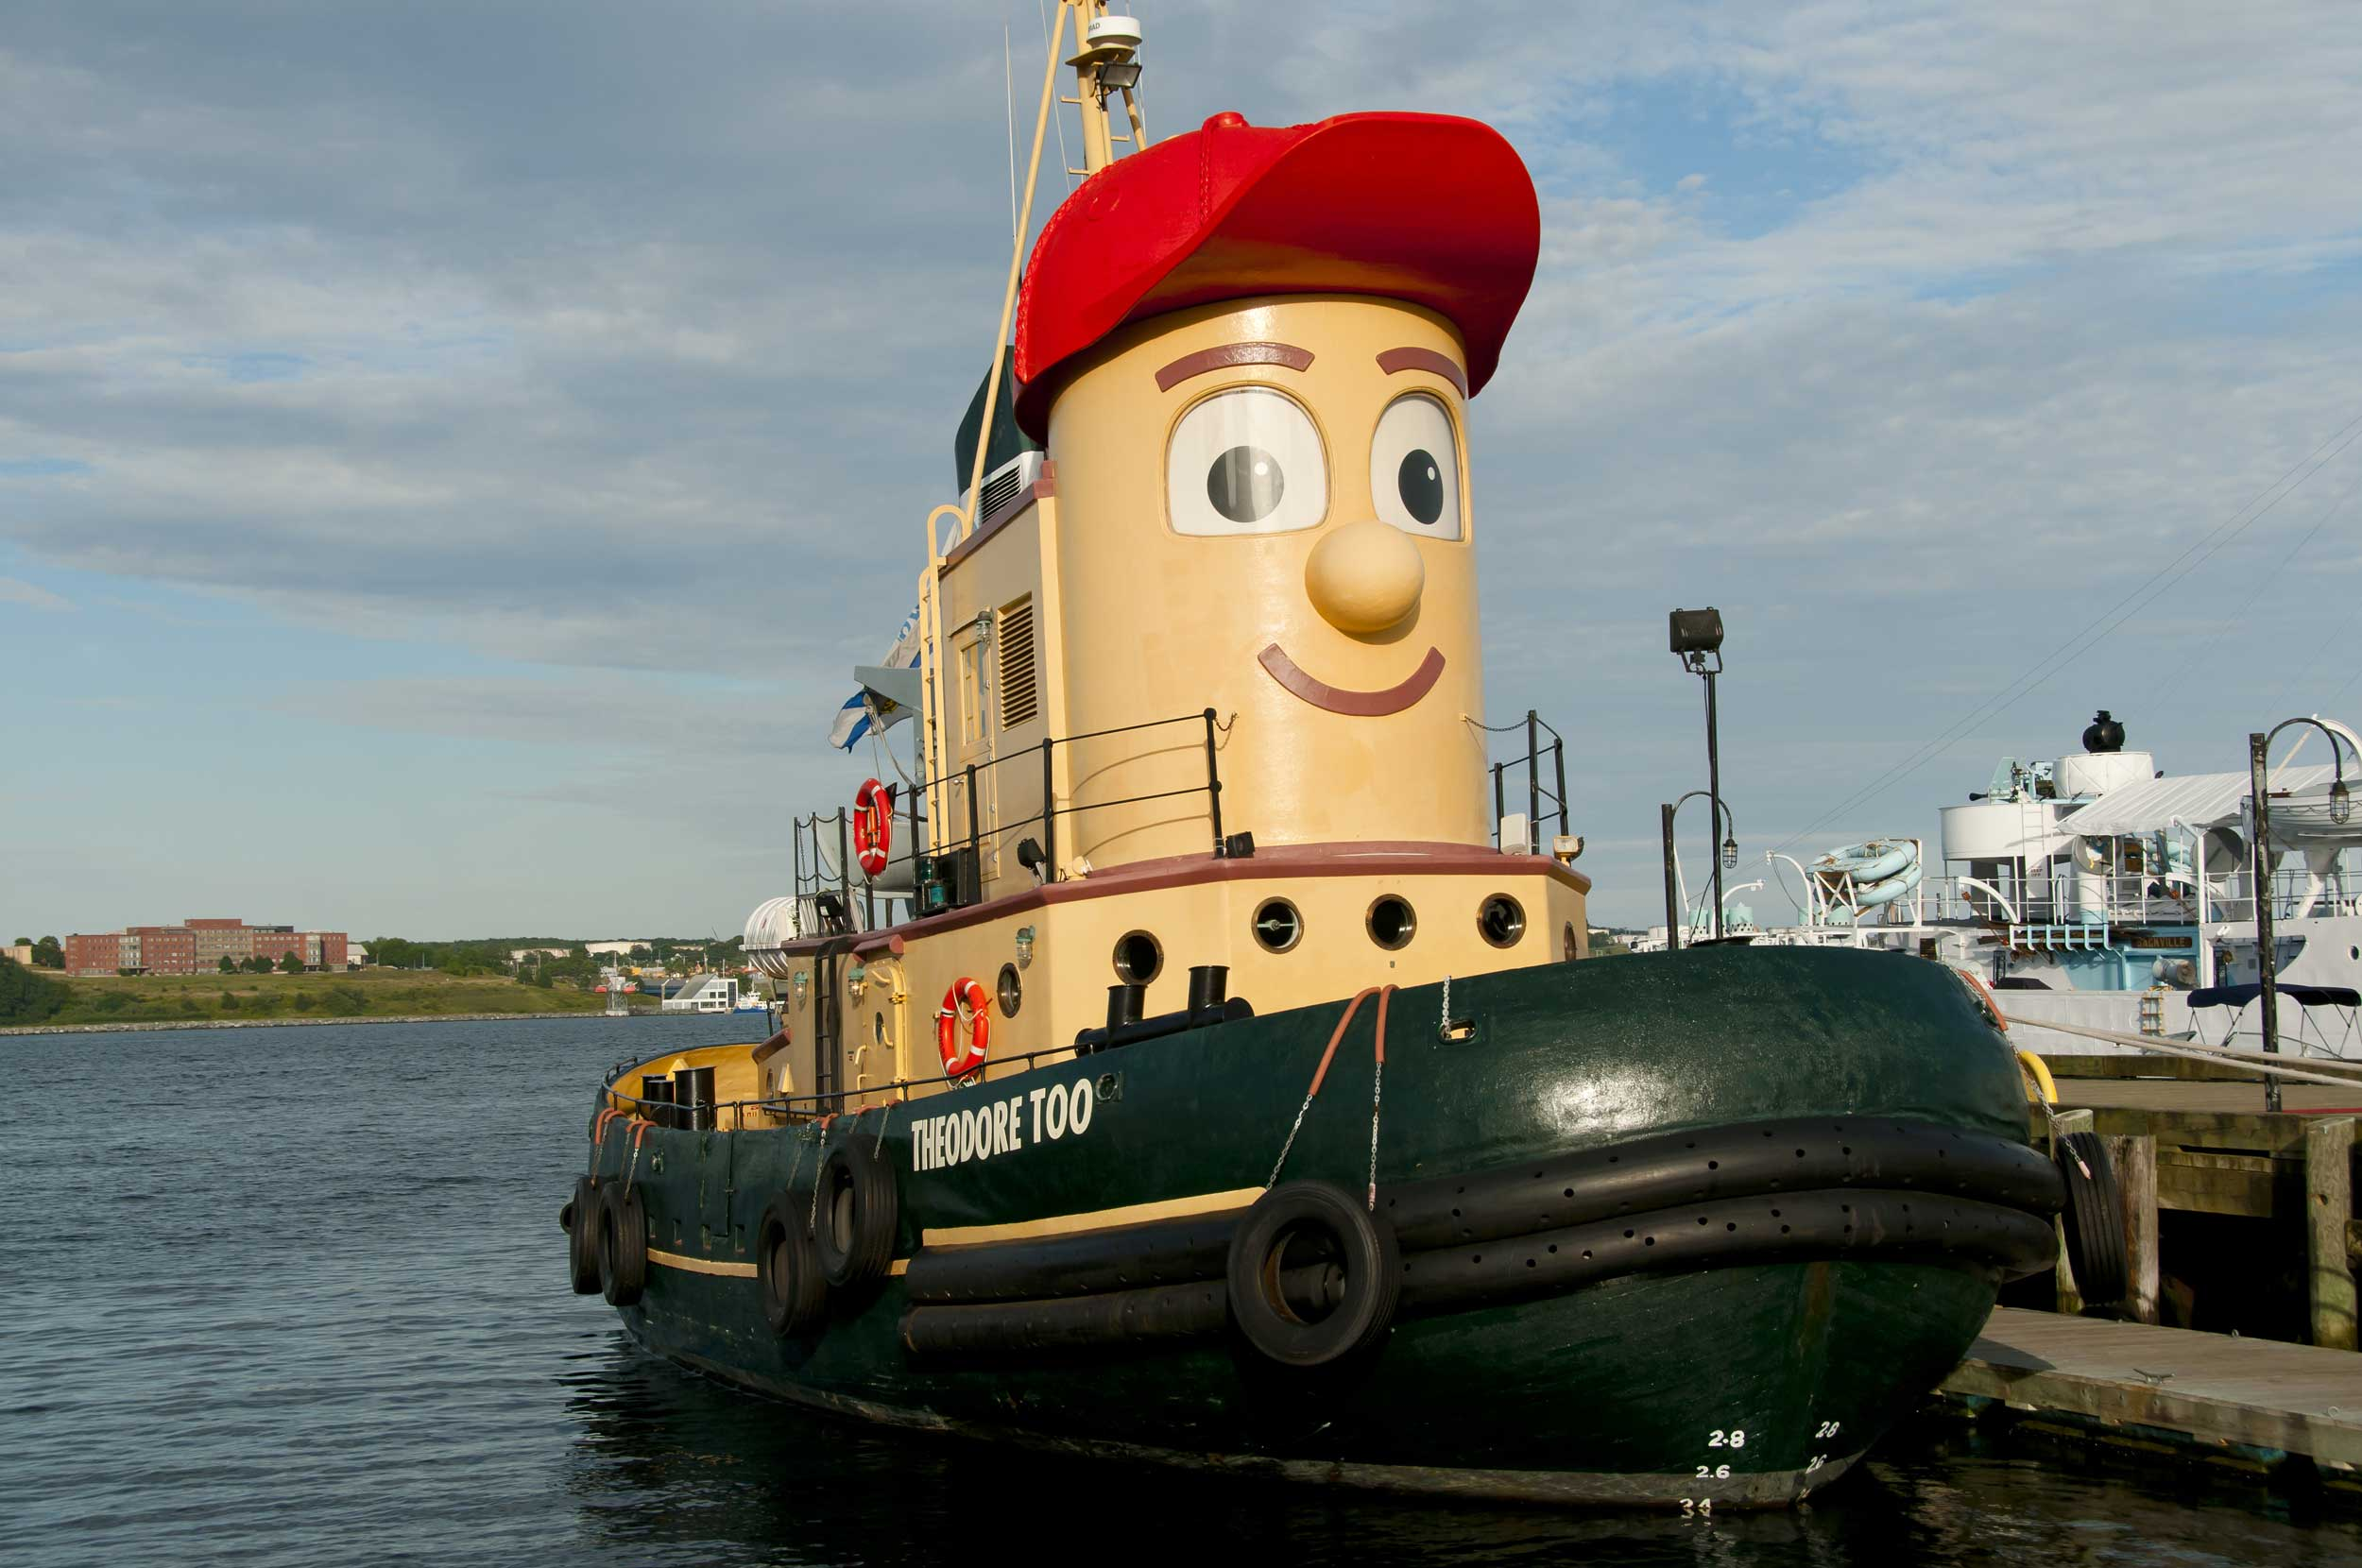 A tugboat done up as a cartoon figure by a pier, Halifax